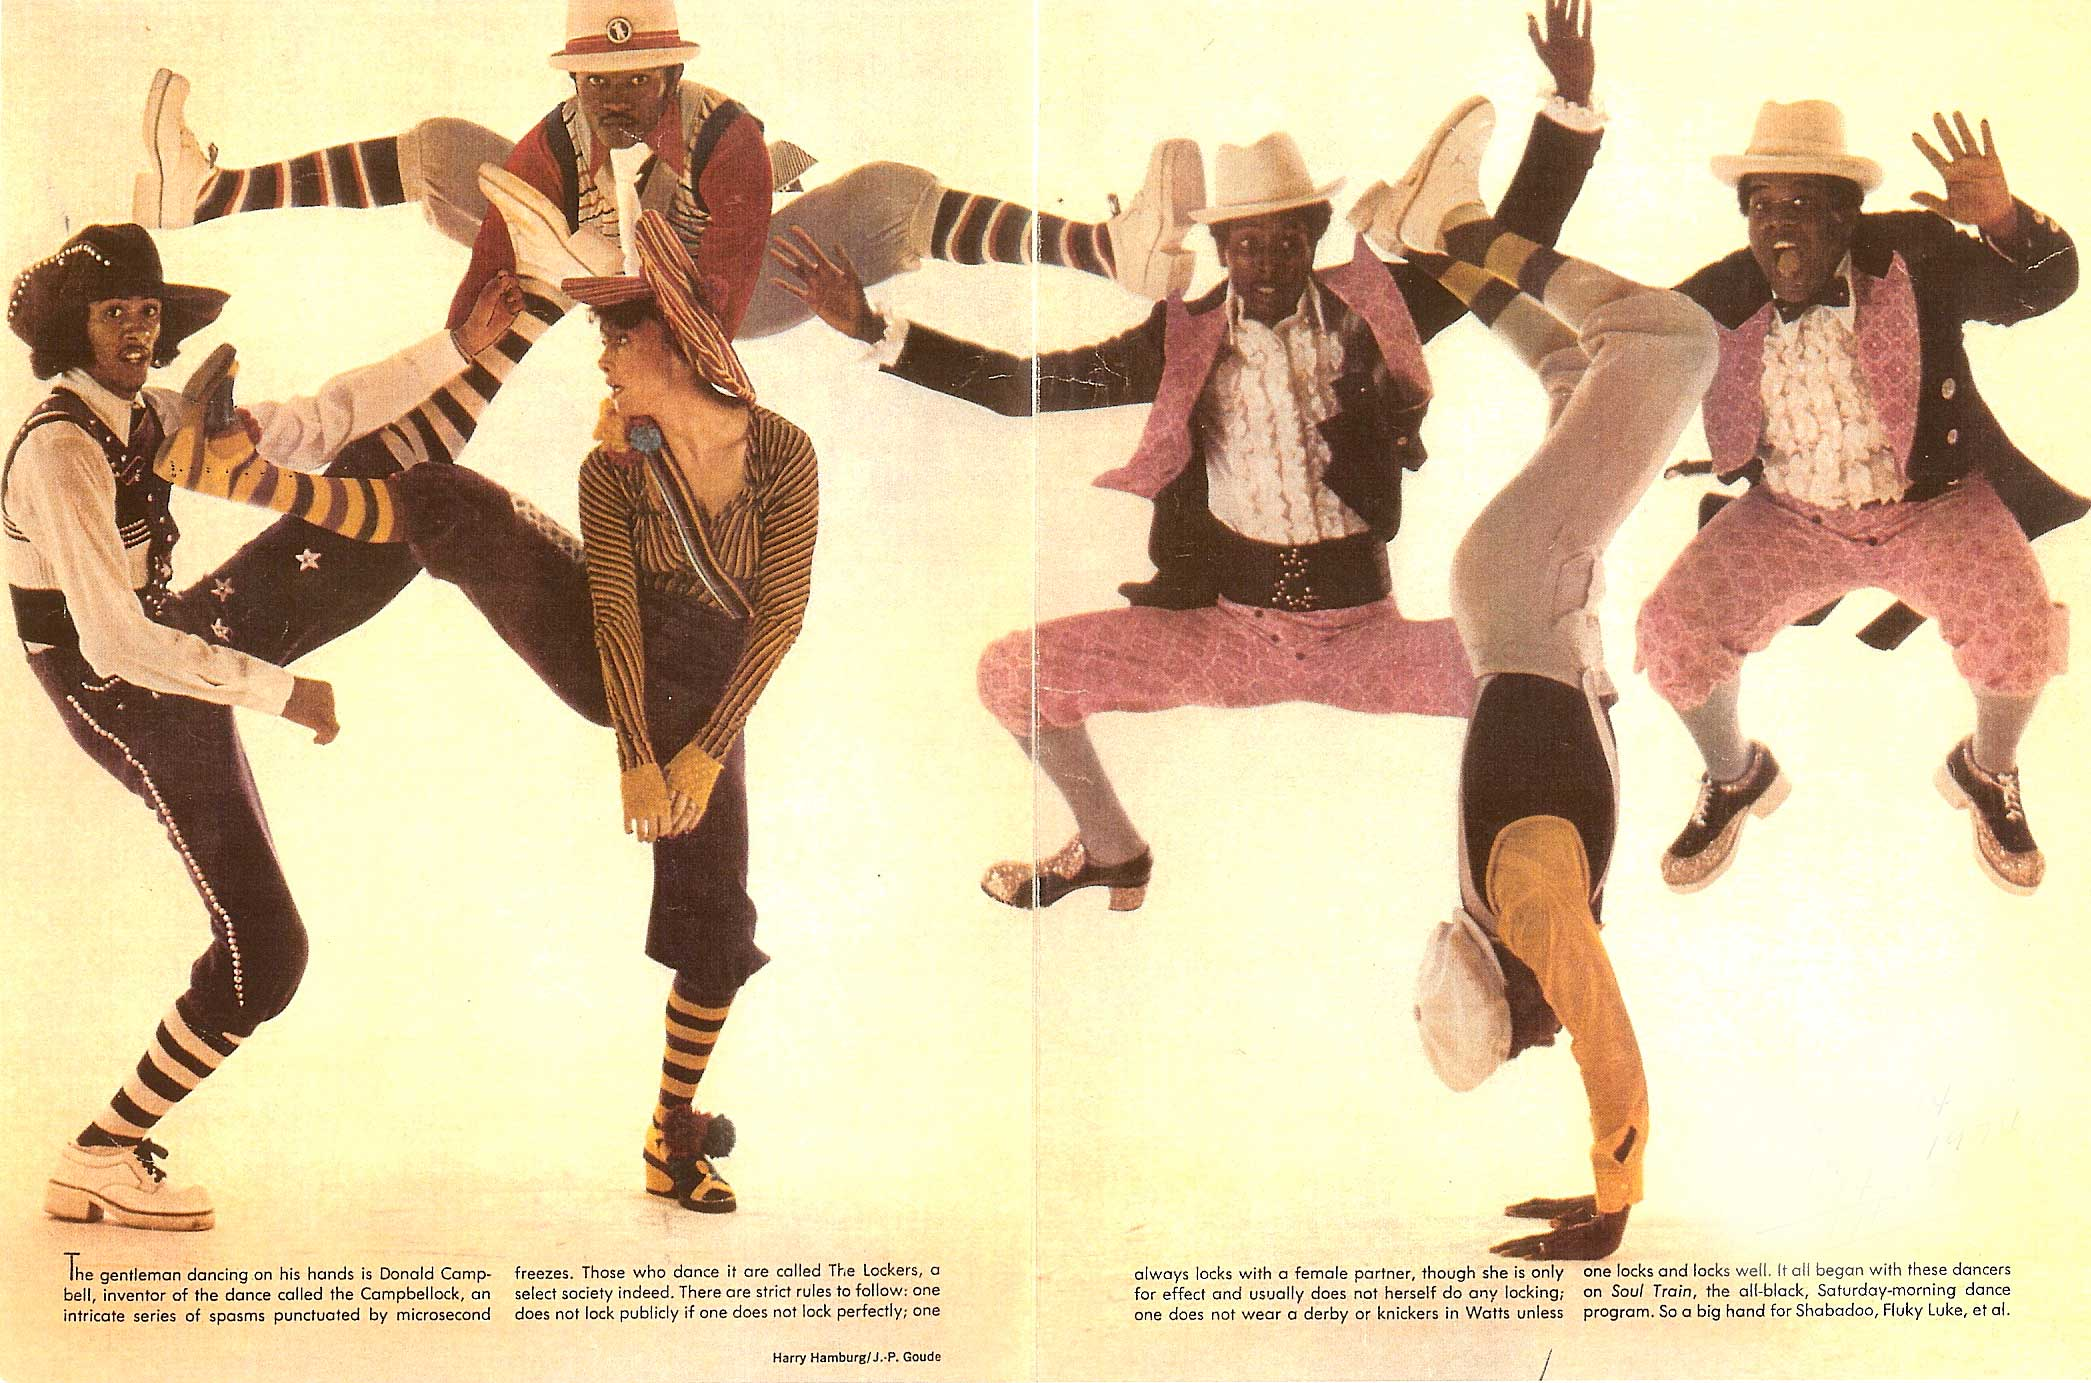 The Lockers 1970s Soul Train Dancers Who Made Us Pop